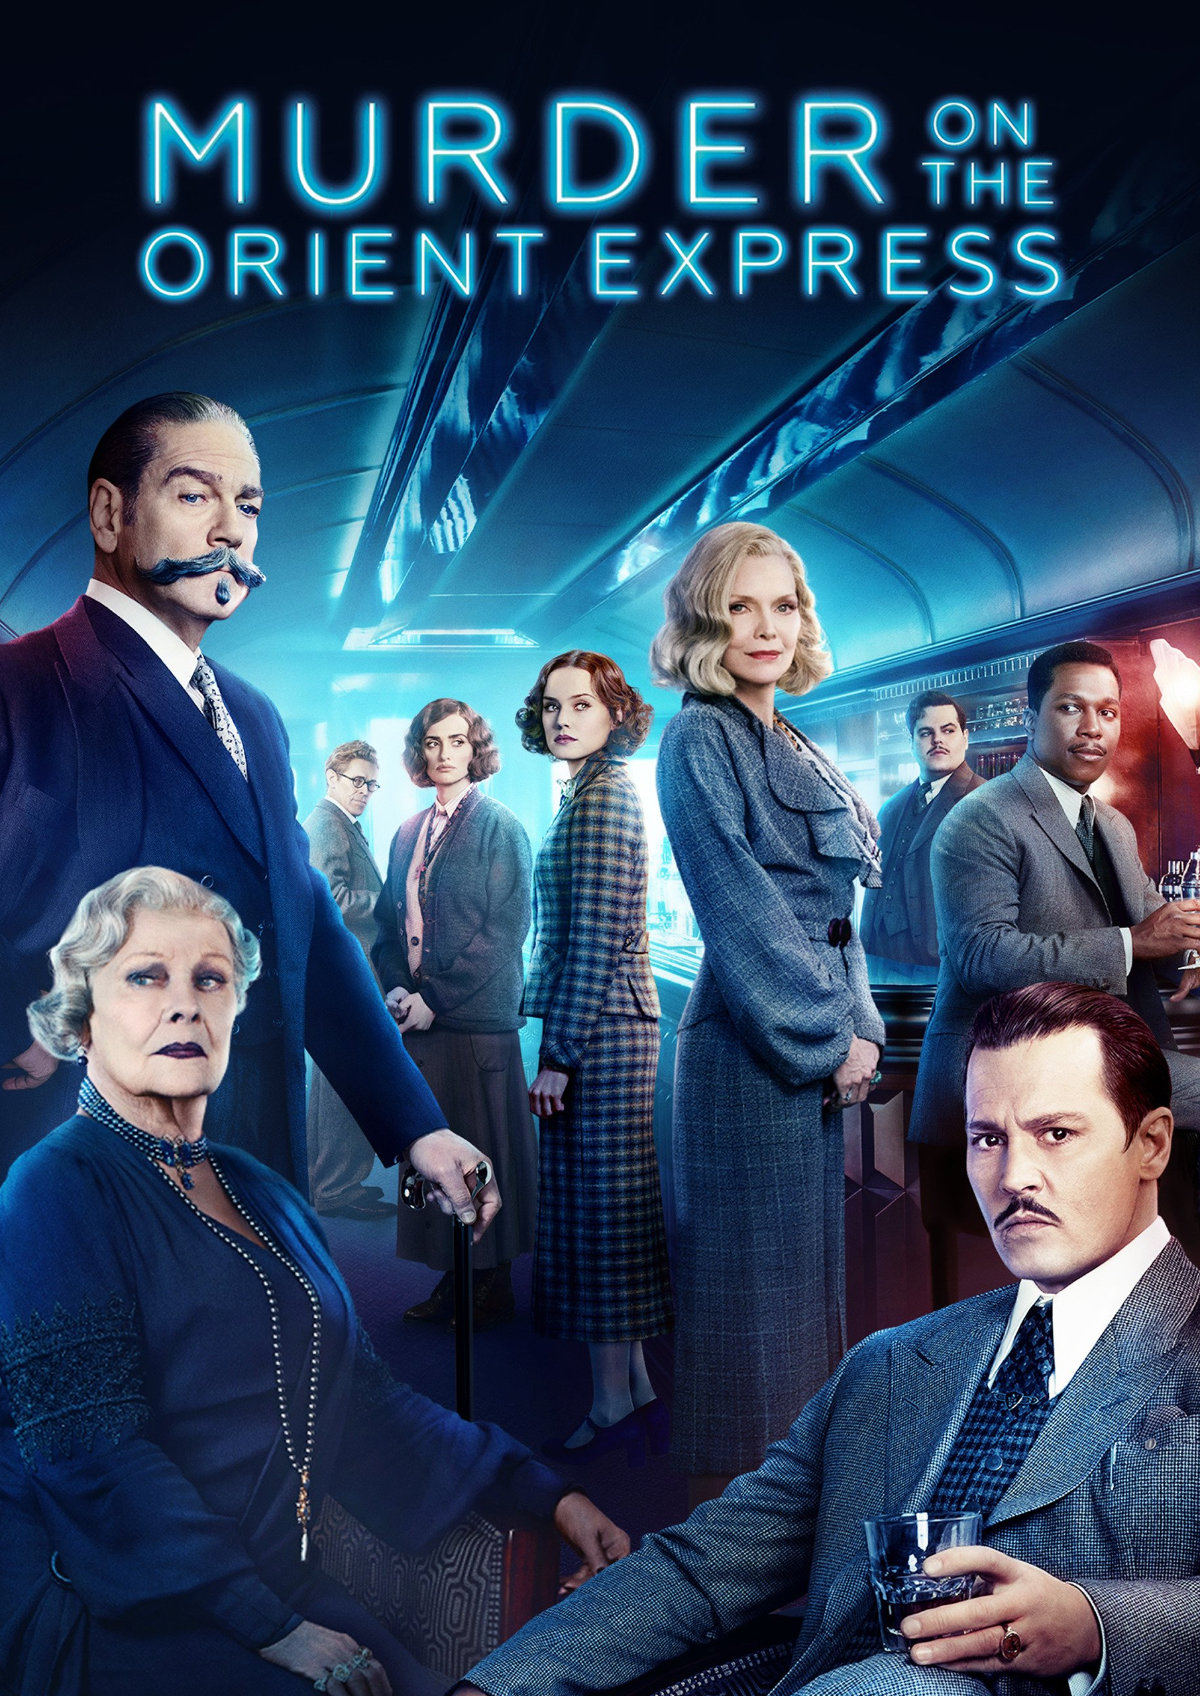 'Murder On The Orient Express' movie poster